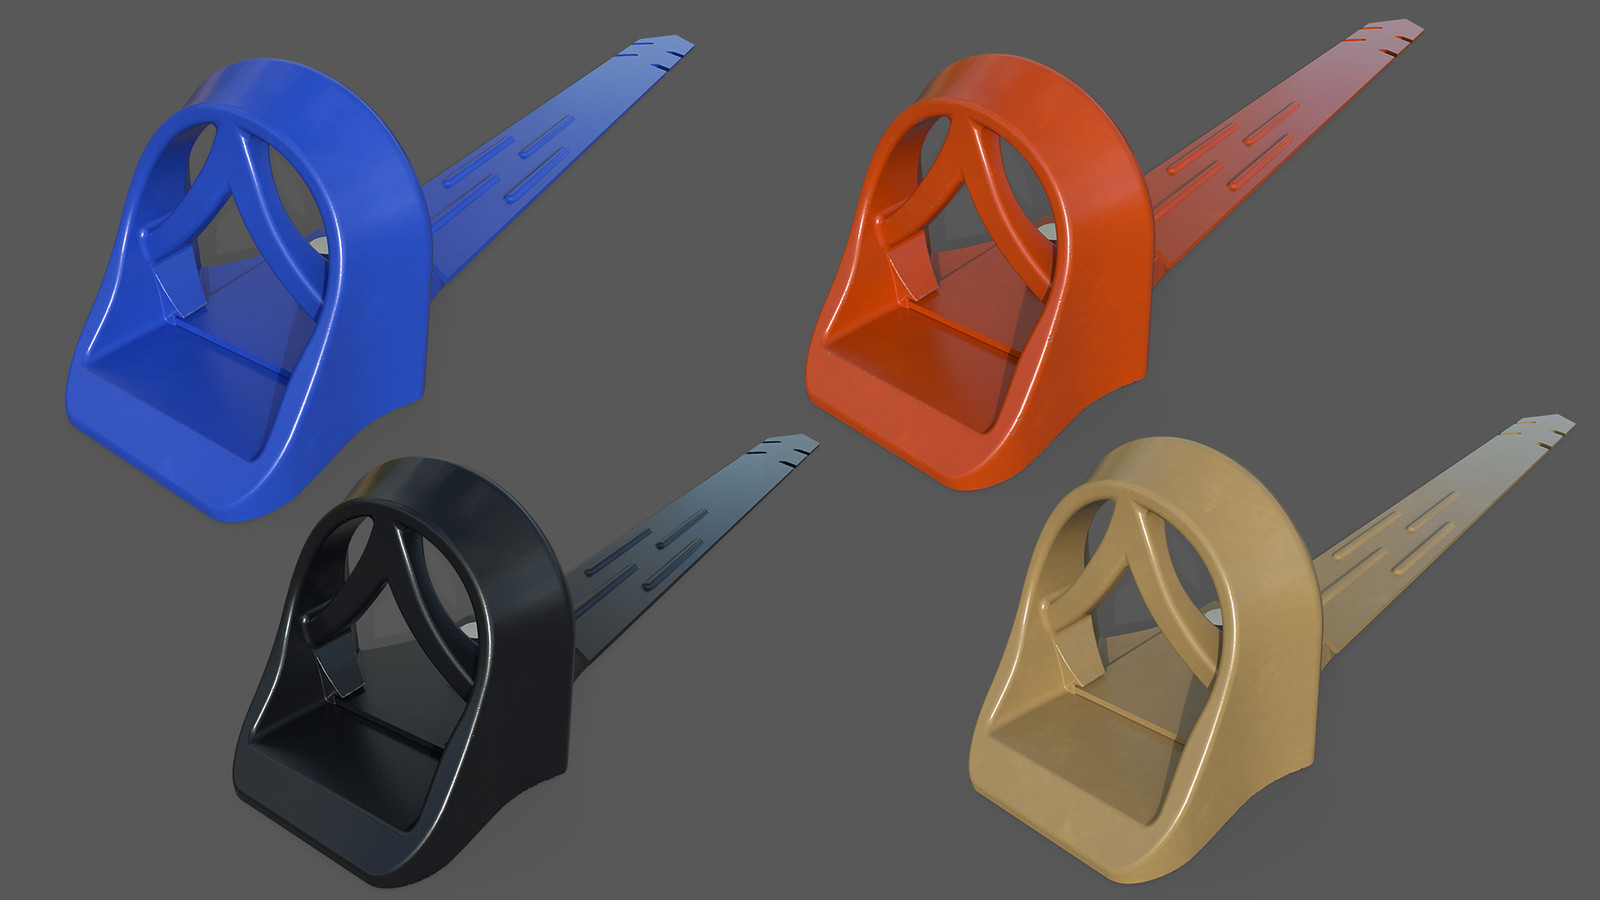 3D renders of various color options for powder coating in order to match customer roof types and colors.